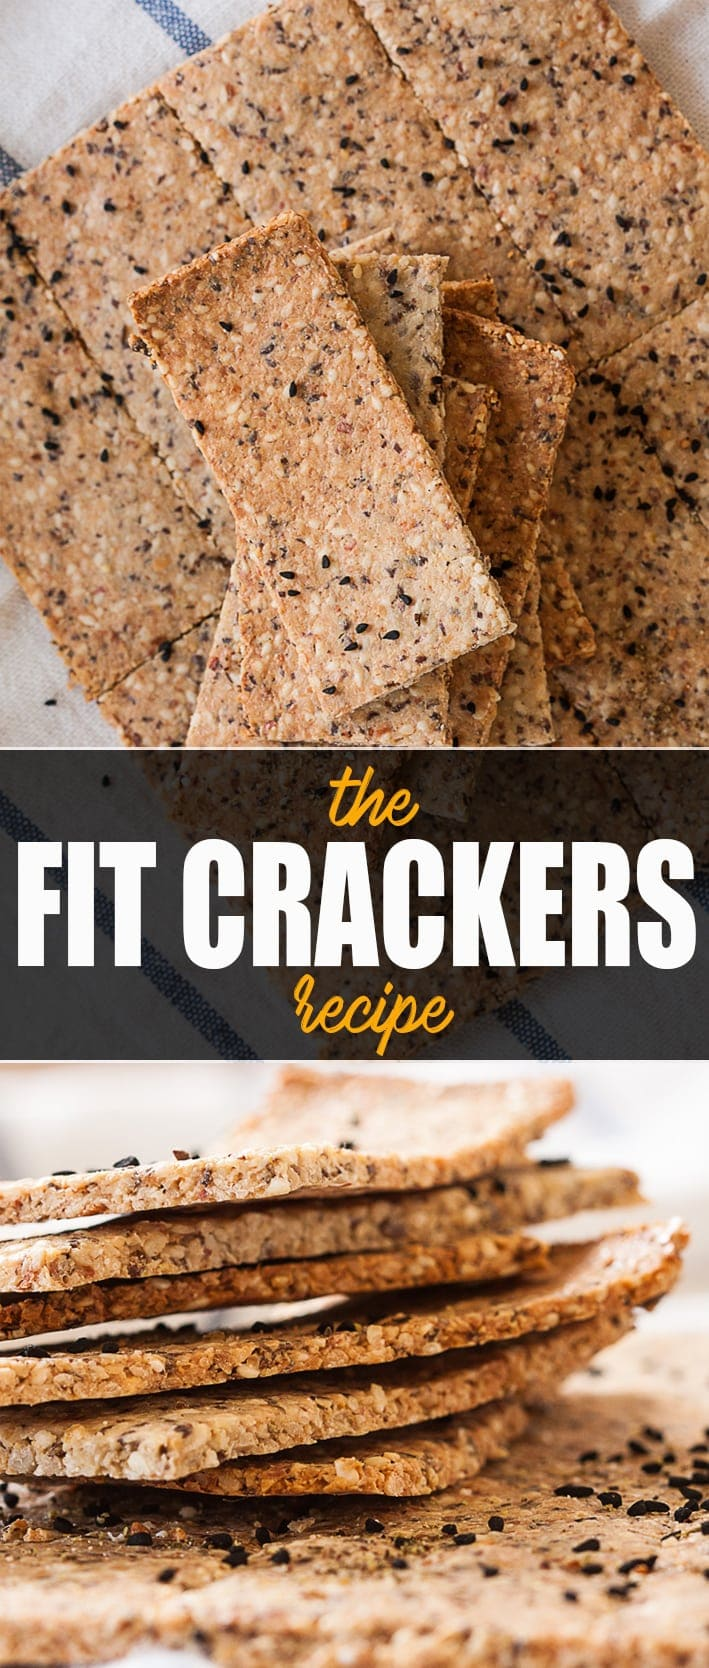 20 Easy Healthy Snack Ideas - Fit Crackers